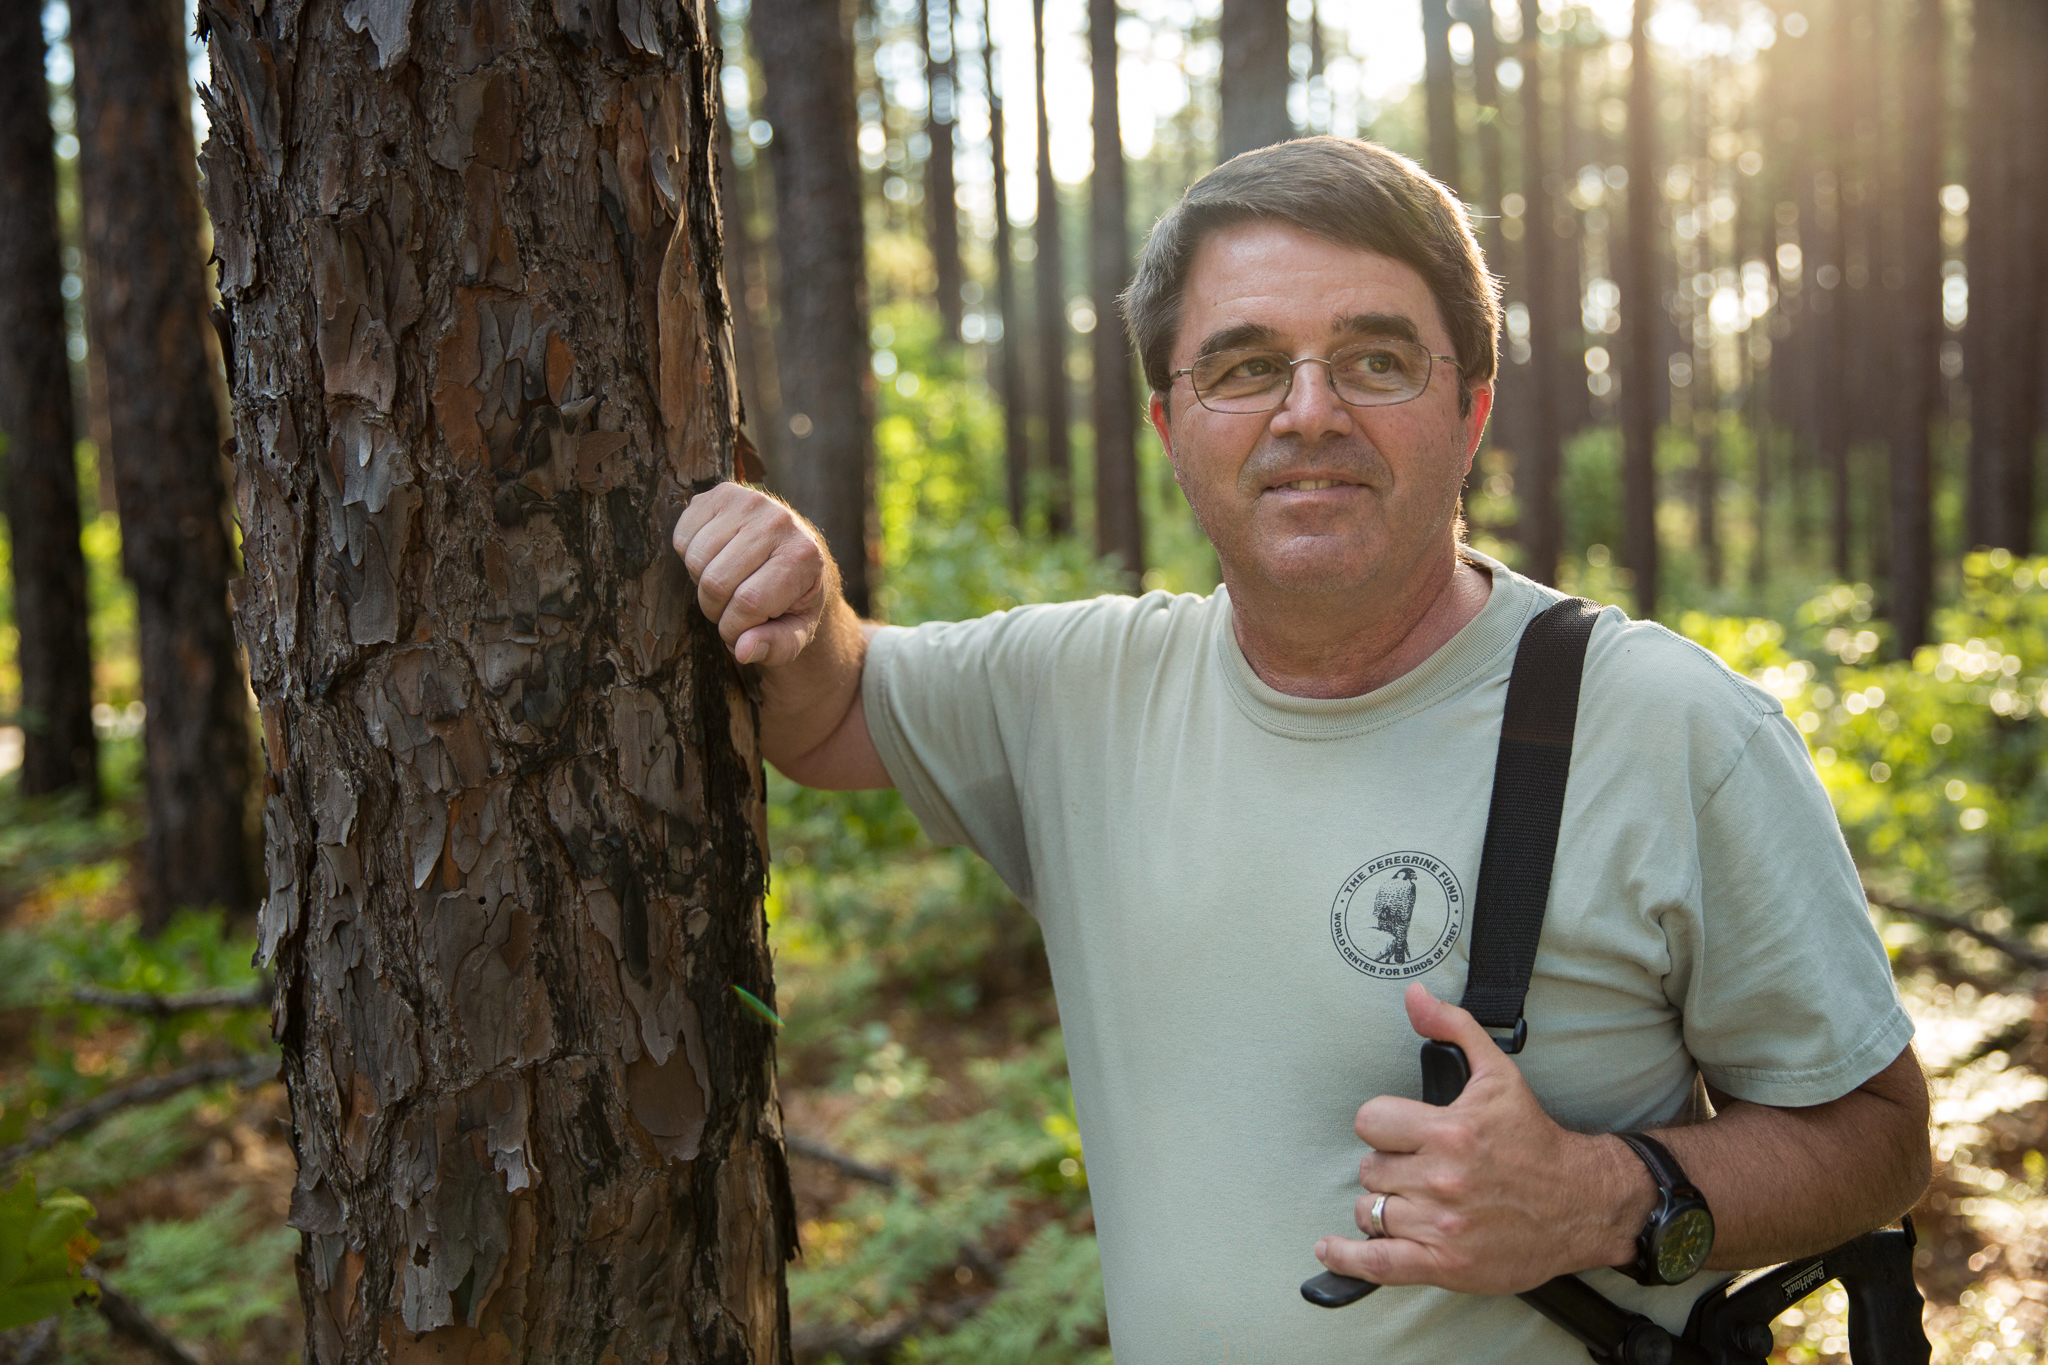 Biologist Jeff Walters, from Virginia Polytechnic Institute and State University, has been studying Fort Bragg's woodpeckers since 1983.